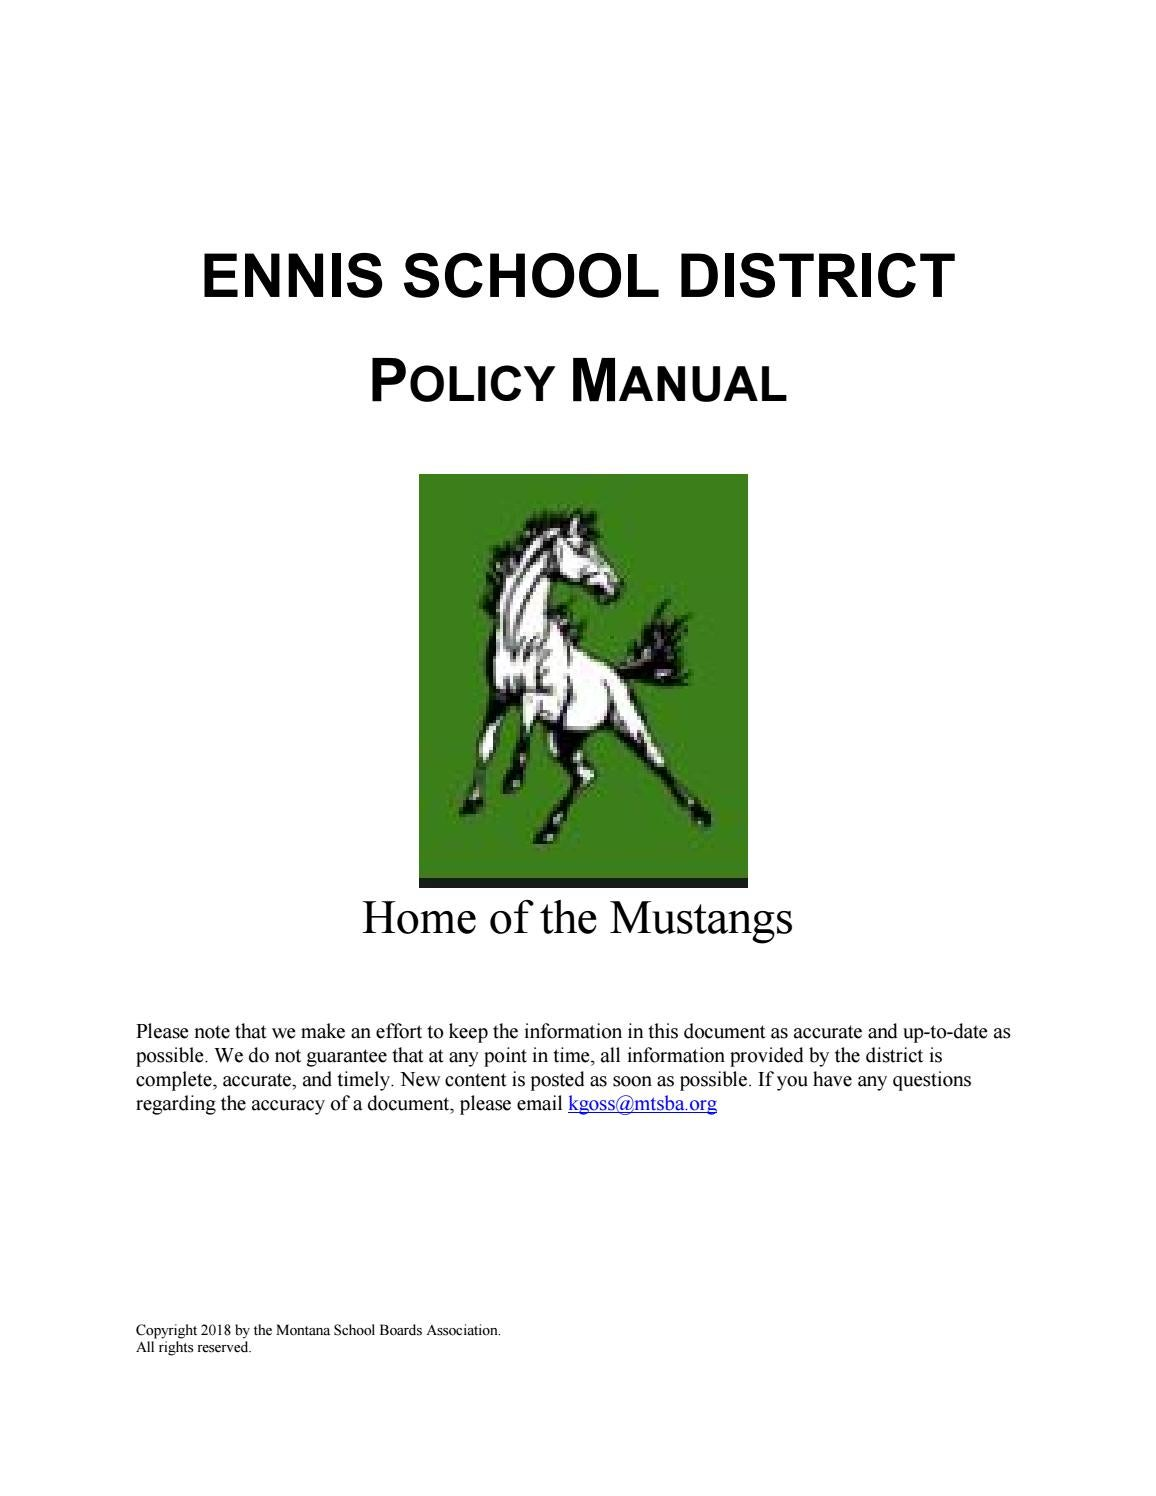 Ennis School District Policy Manual by Montana School Boards